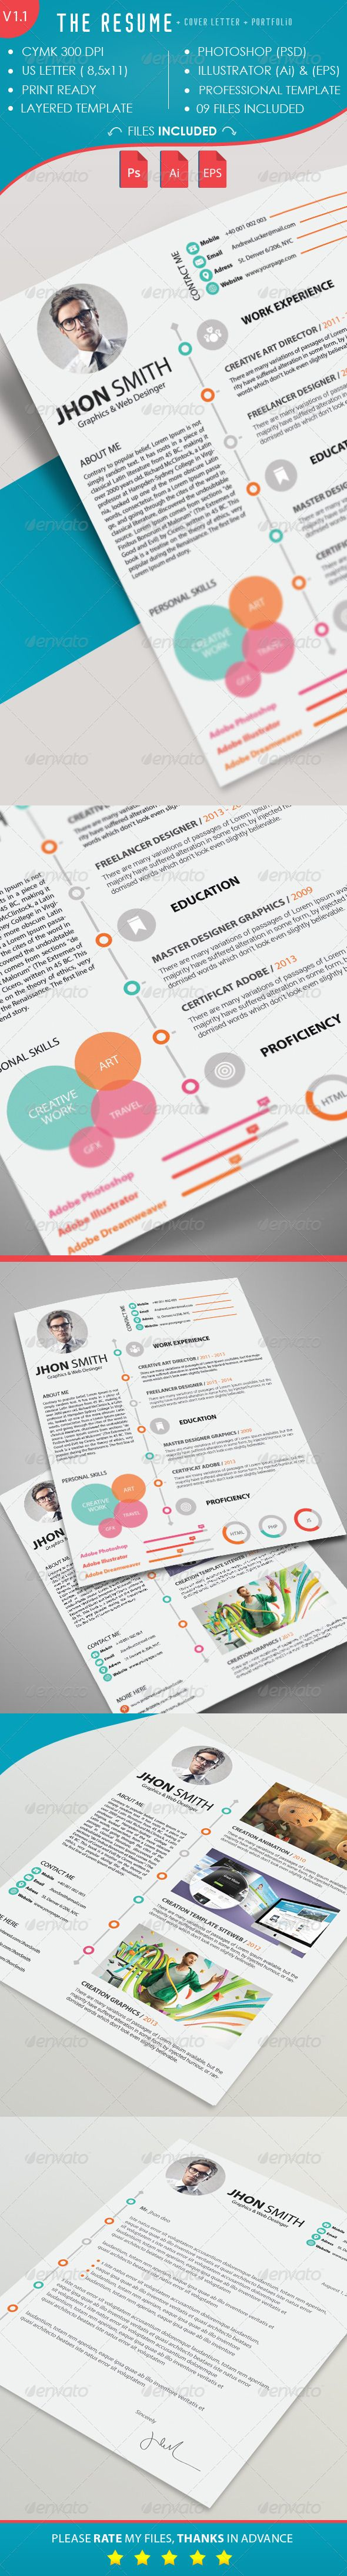 41 best CV images on Pinterest | Resume templates, Cv template and ...